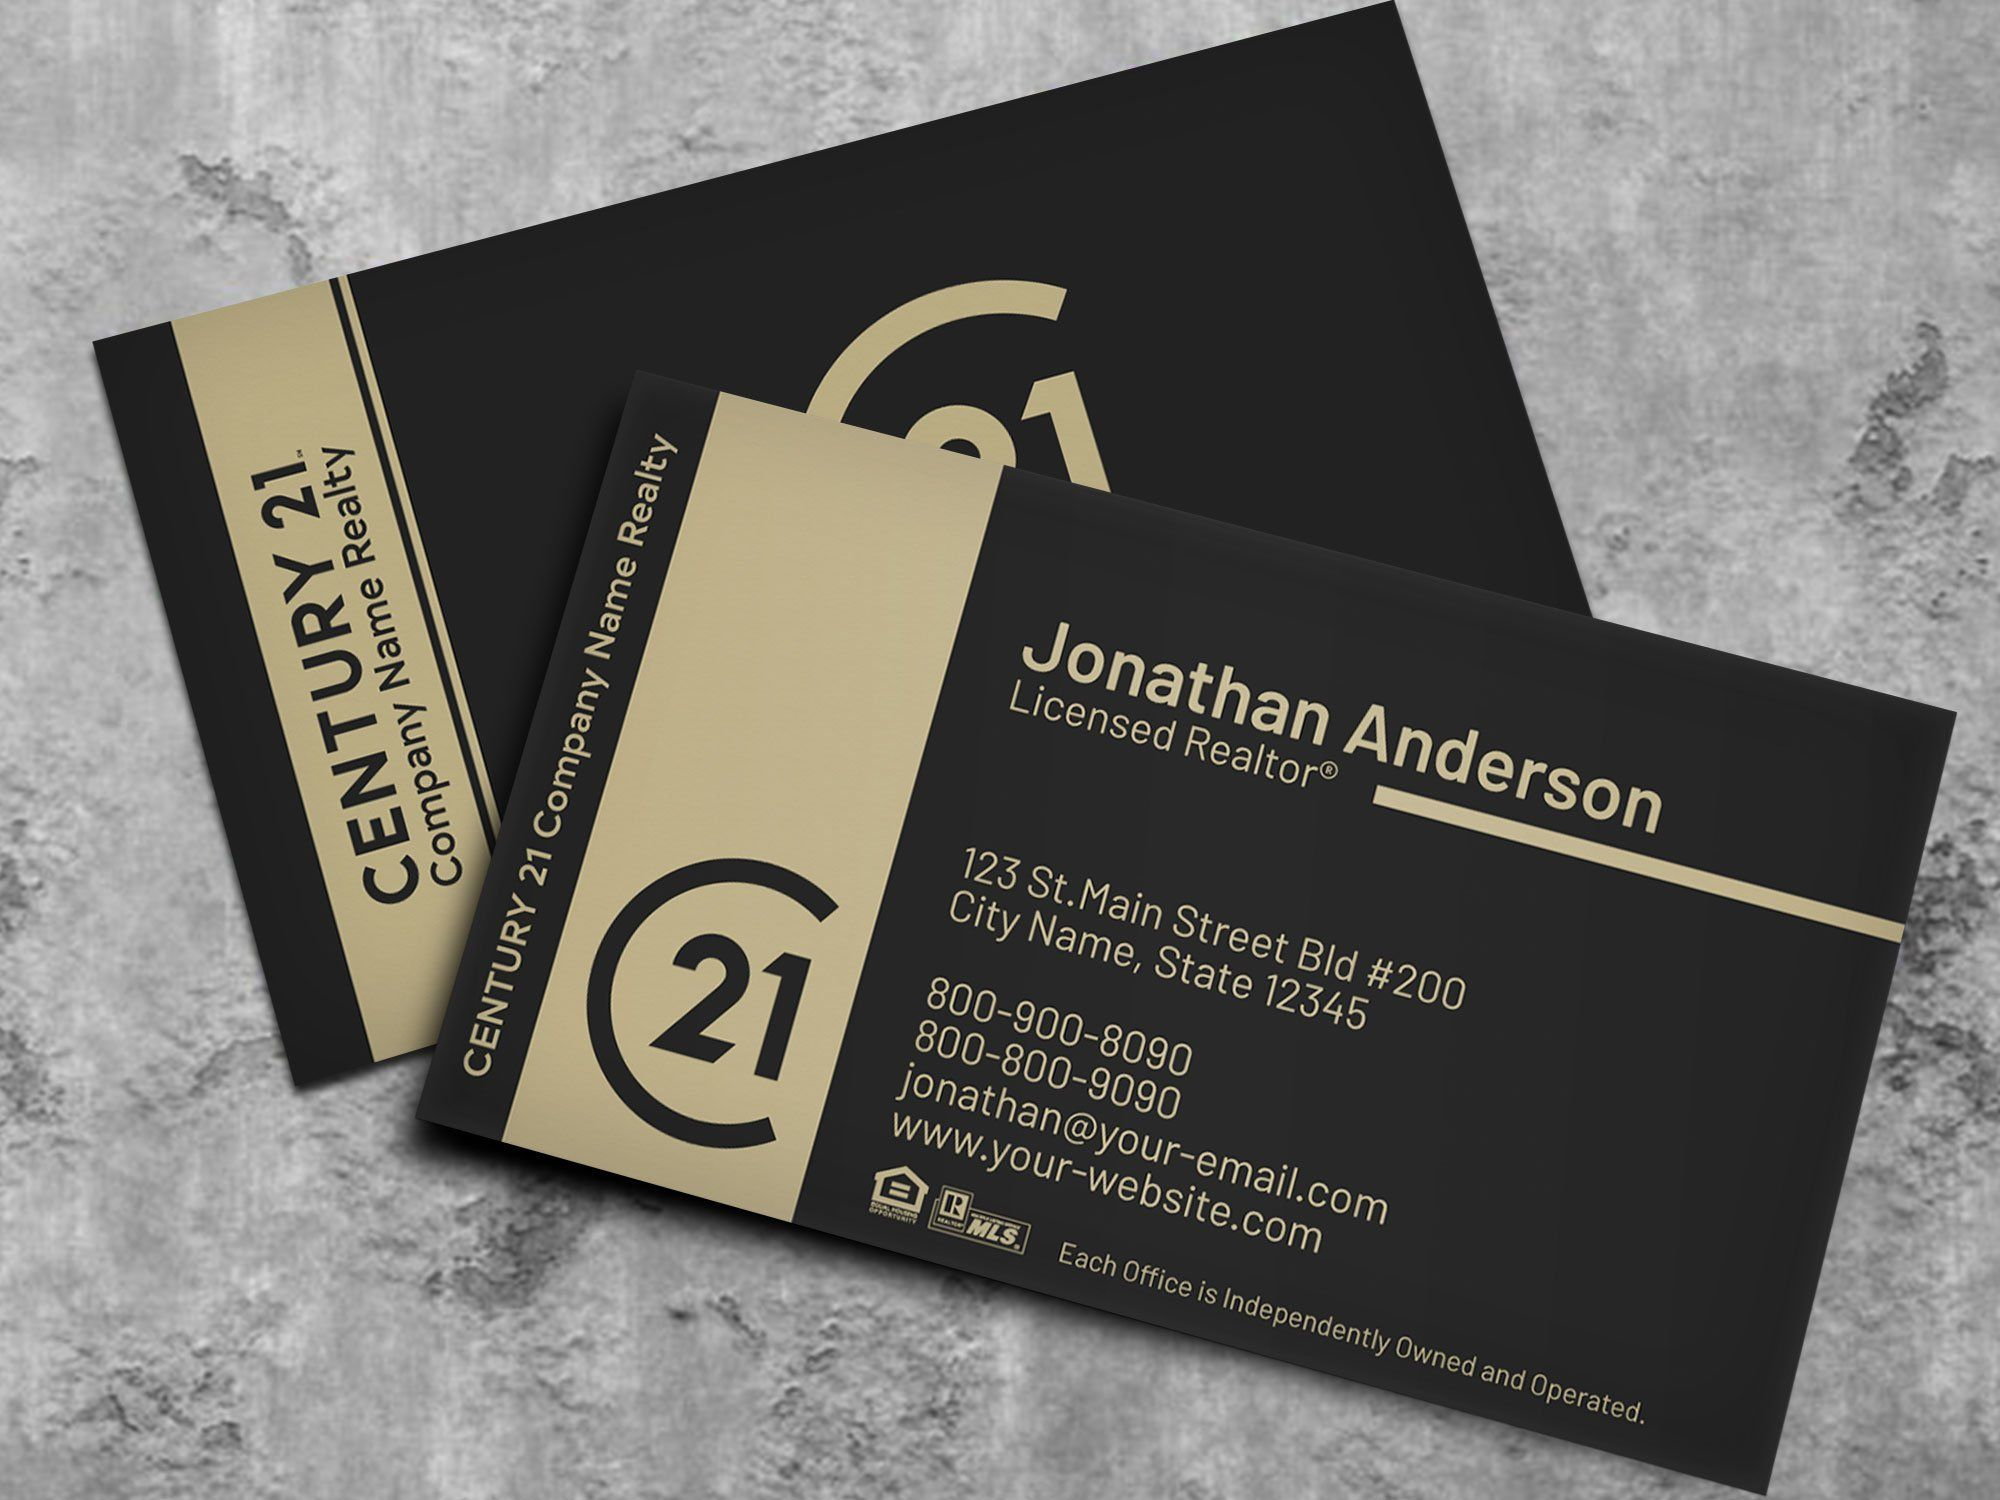 Century 21 Business Card Real Estate Business Card Design Etsy Realtor Business Cards Real Estate Business Card Design Fun Business Card Design